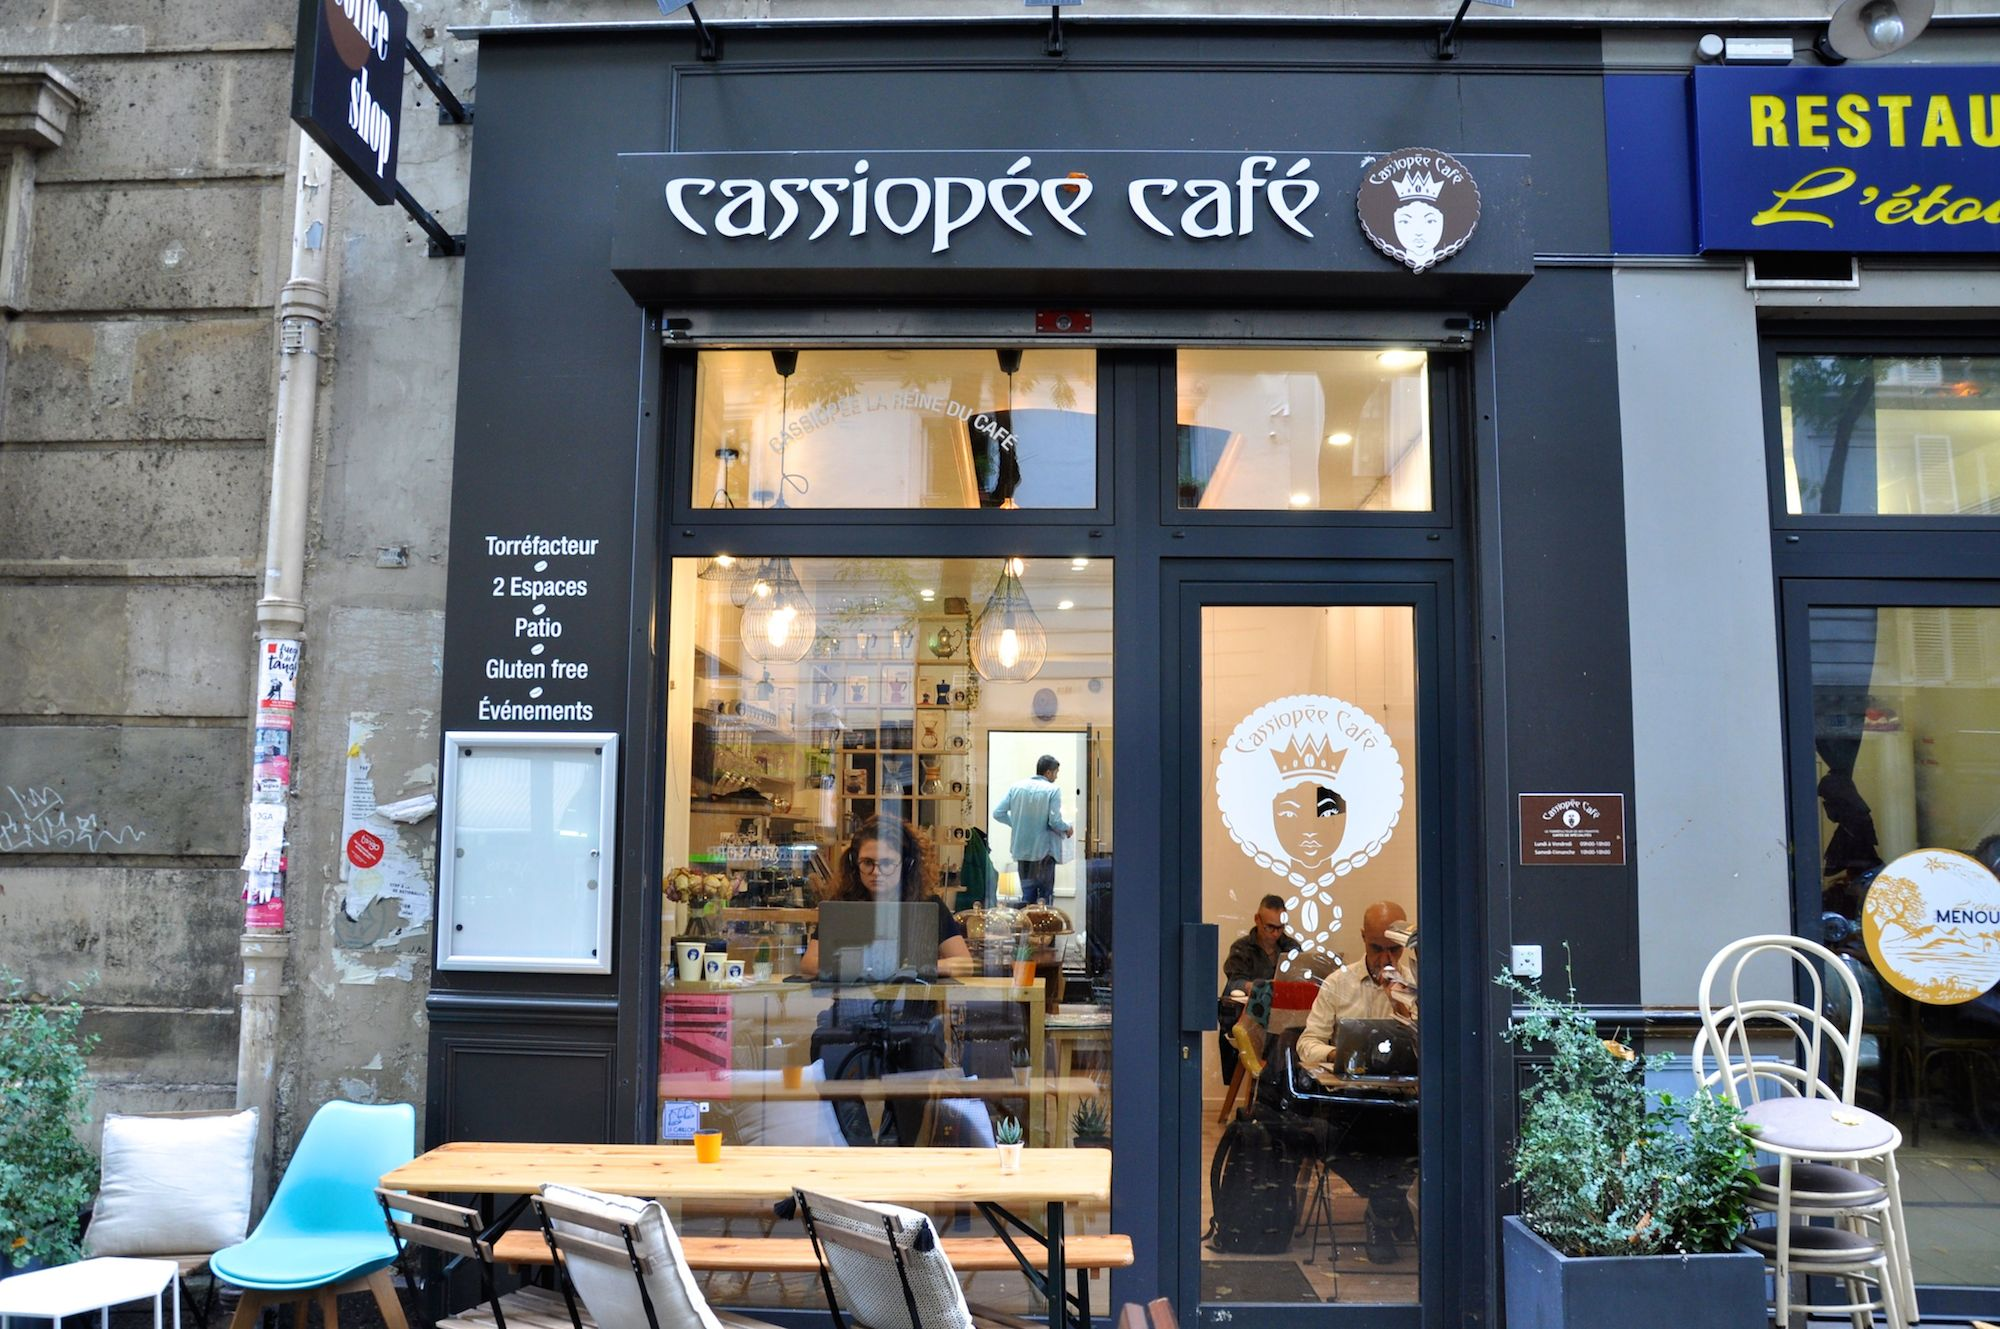 HiP Paris Blog reviews Cassiopee